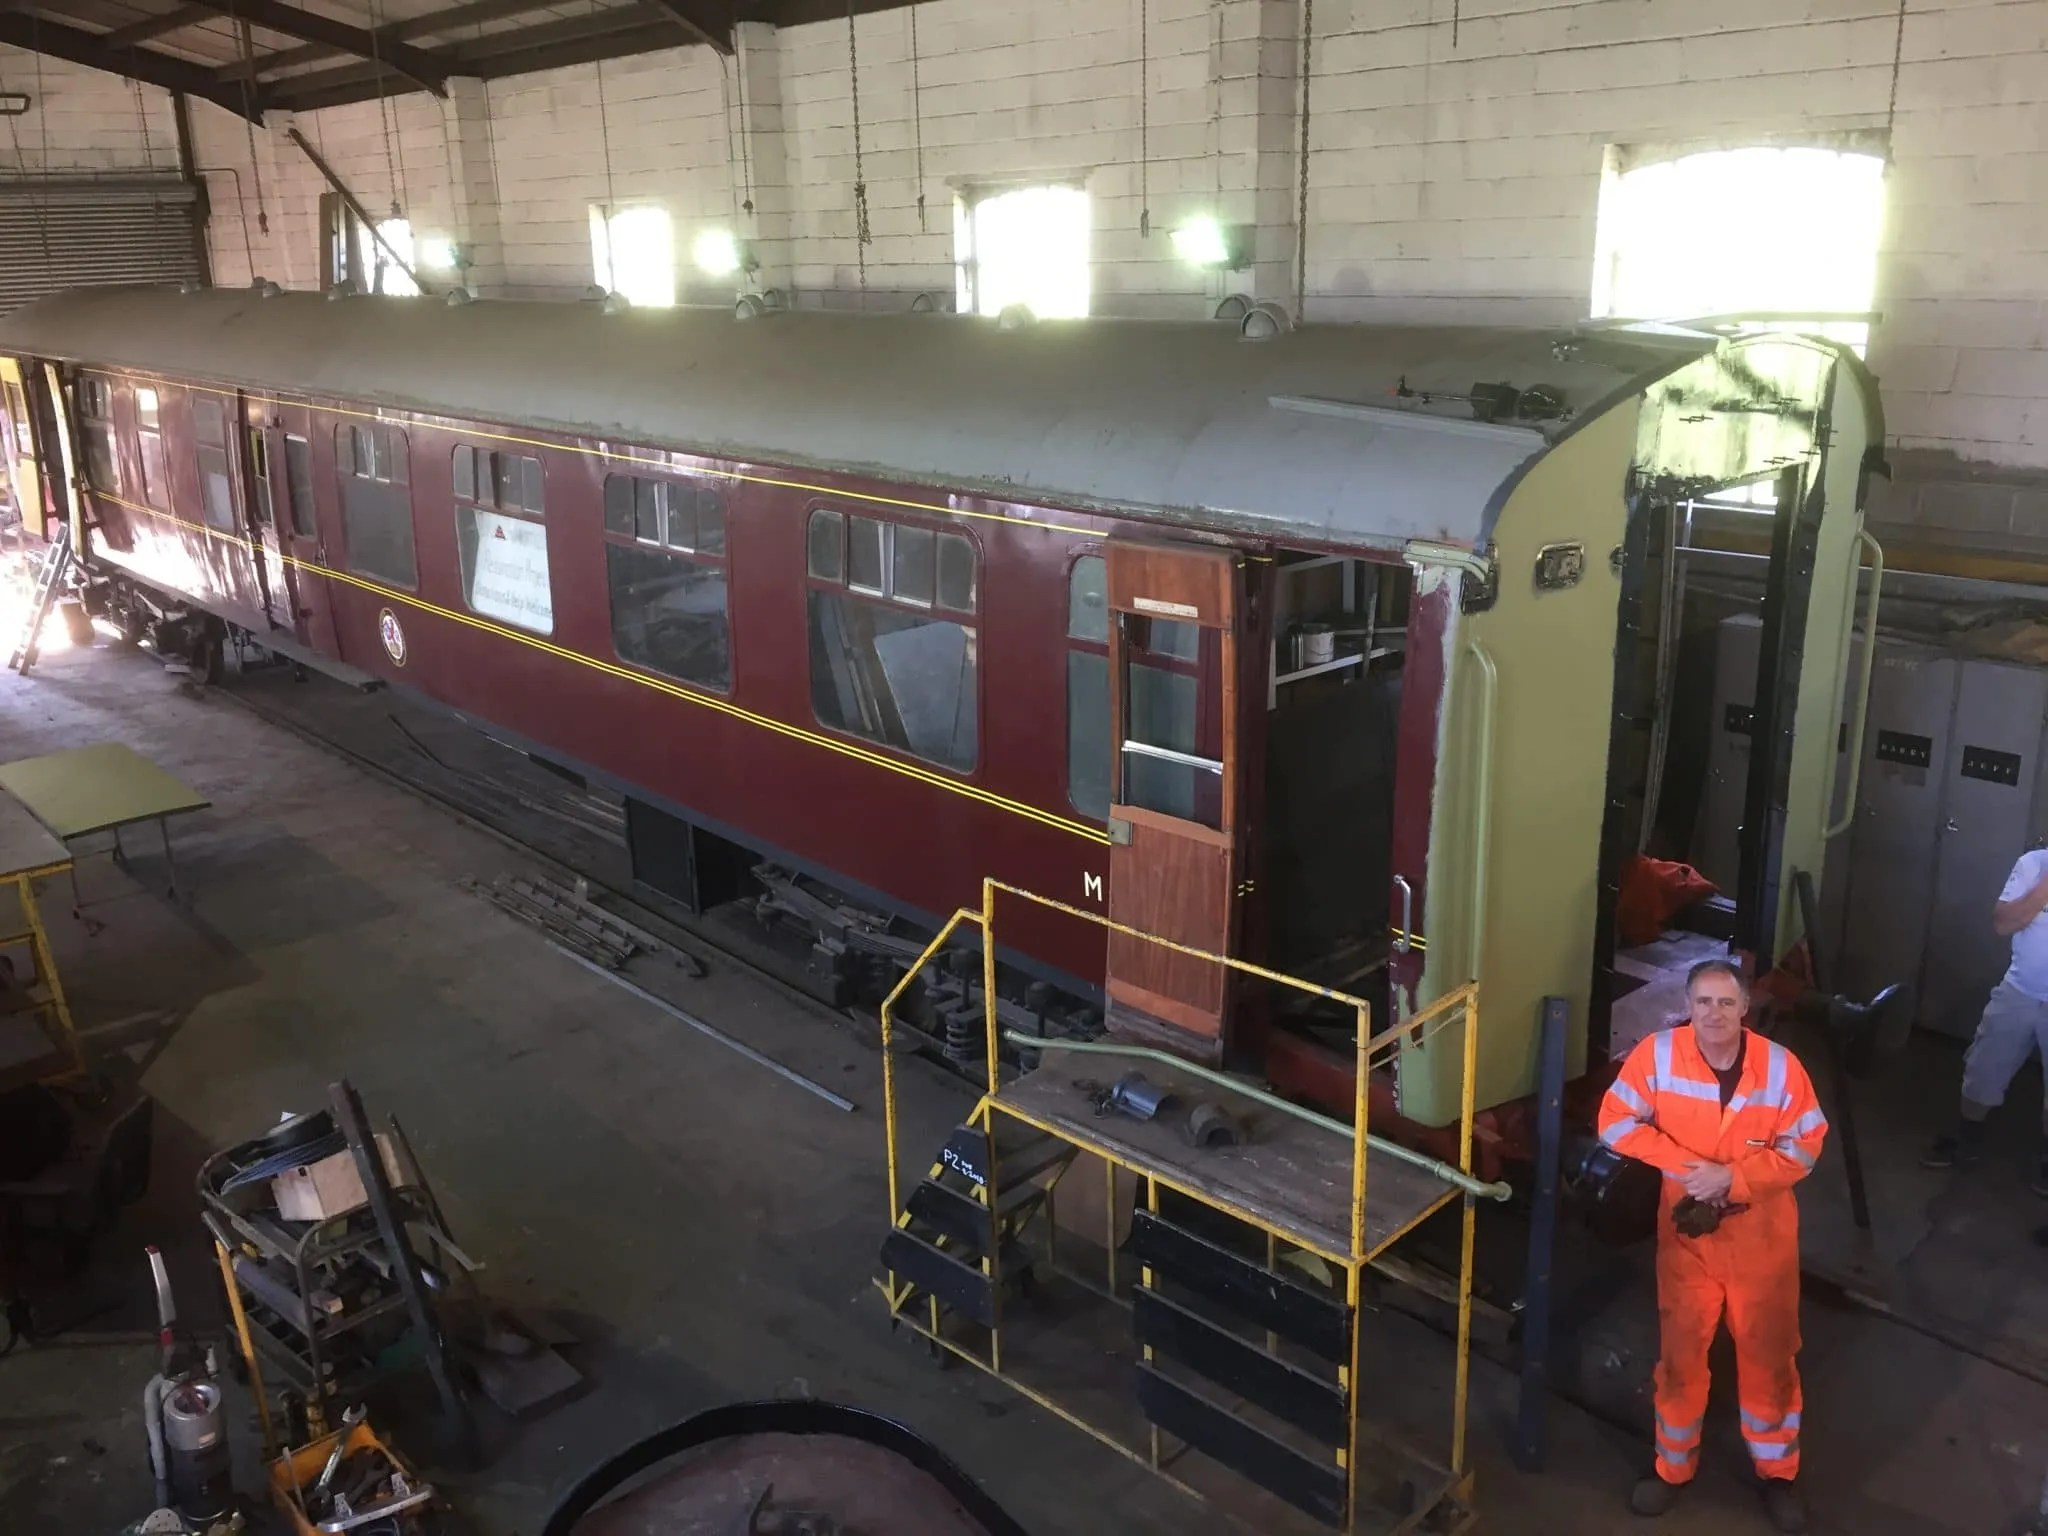 Further progress in the refitting of the corridor connections on BSK M34527 at Cranmore Maintenance Services.